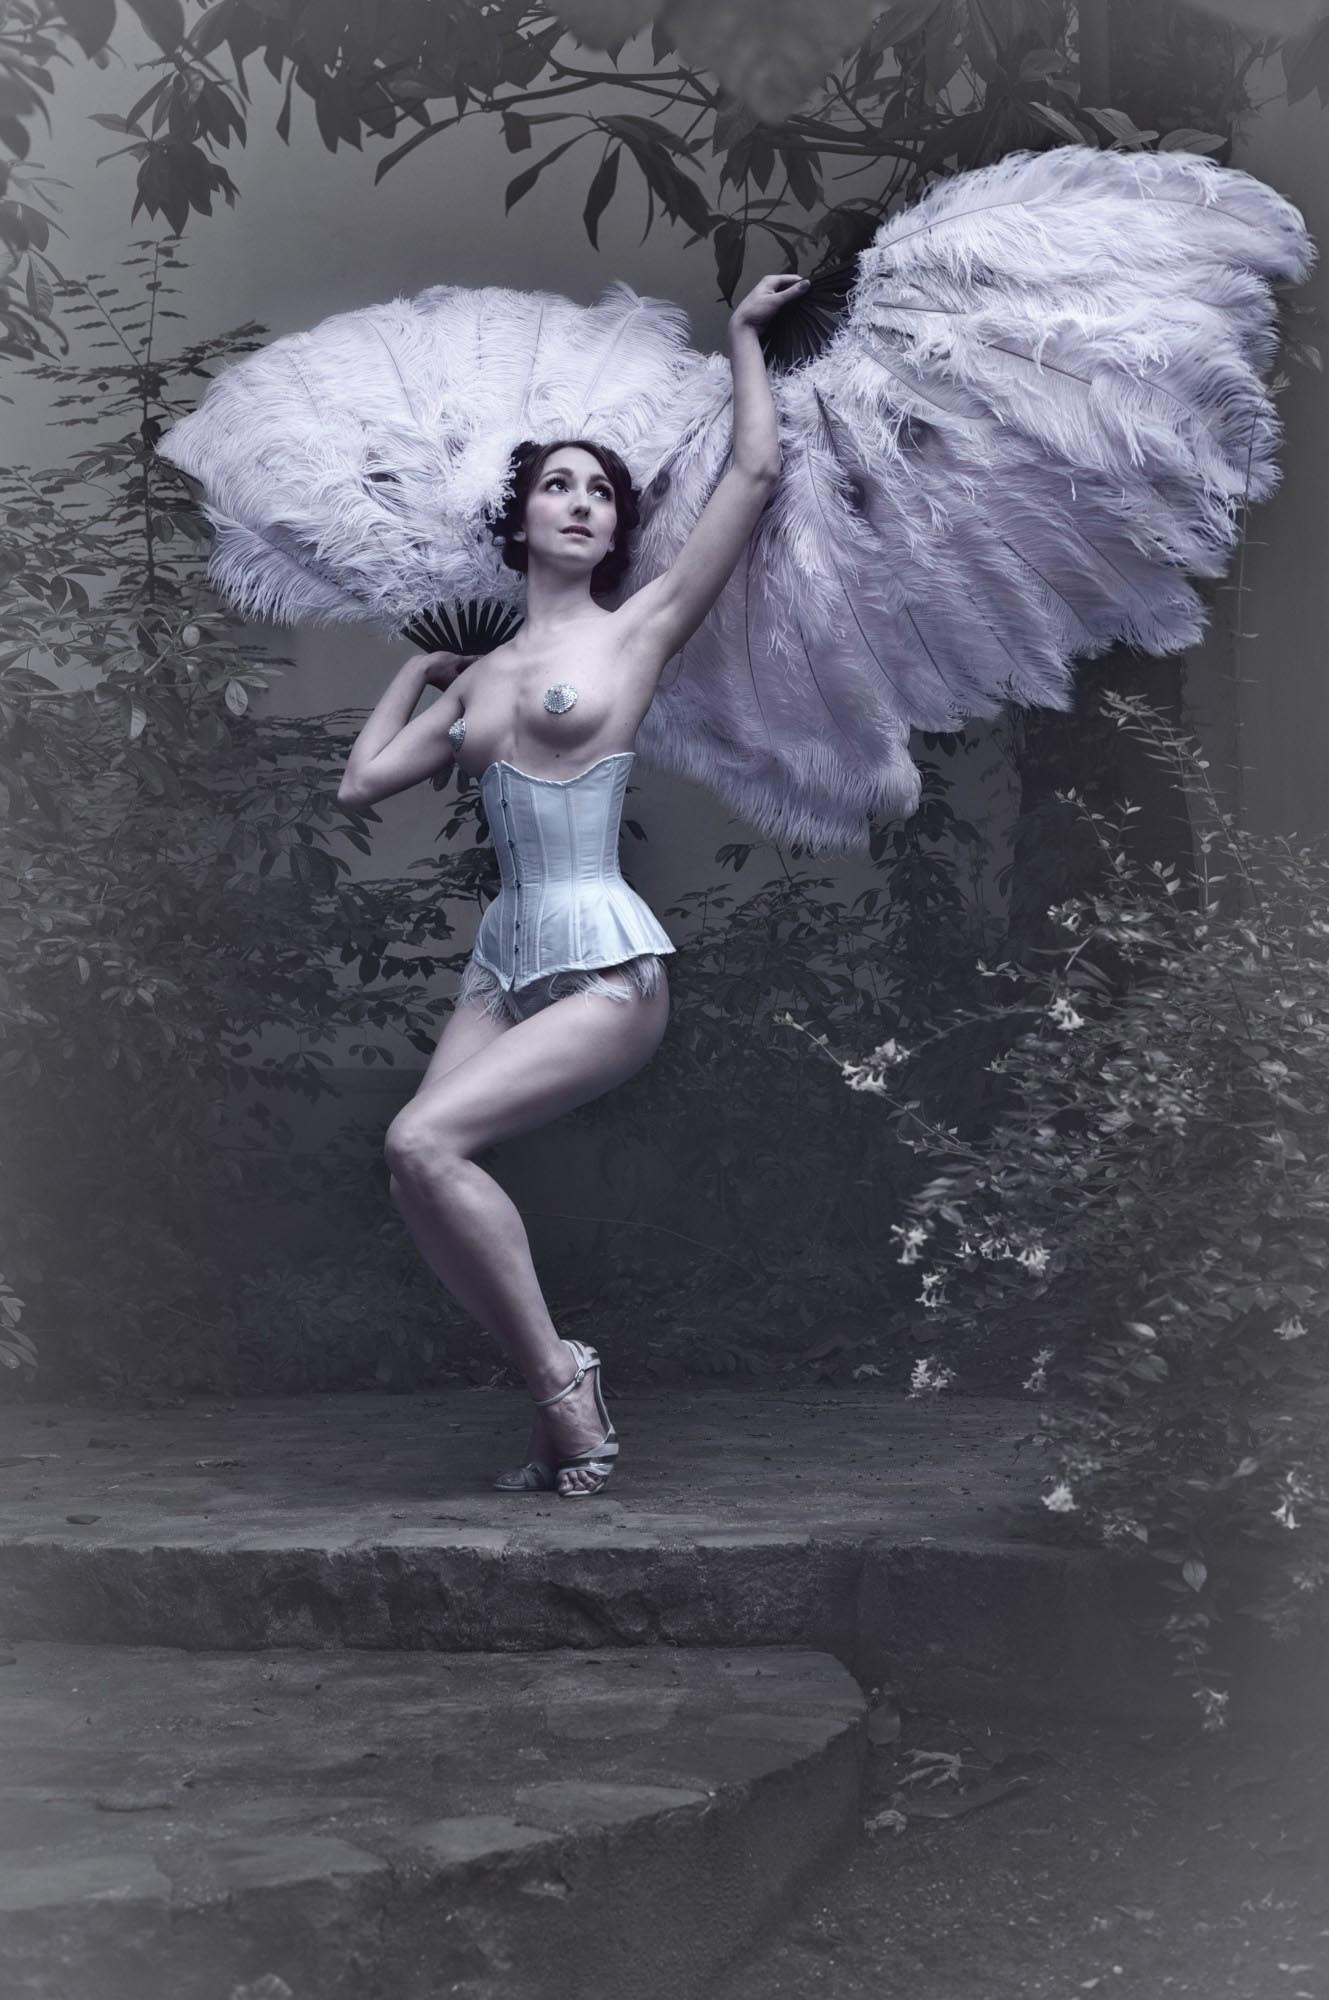 Spreading her angelic wings